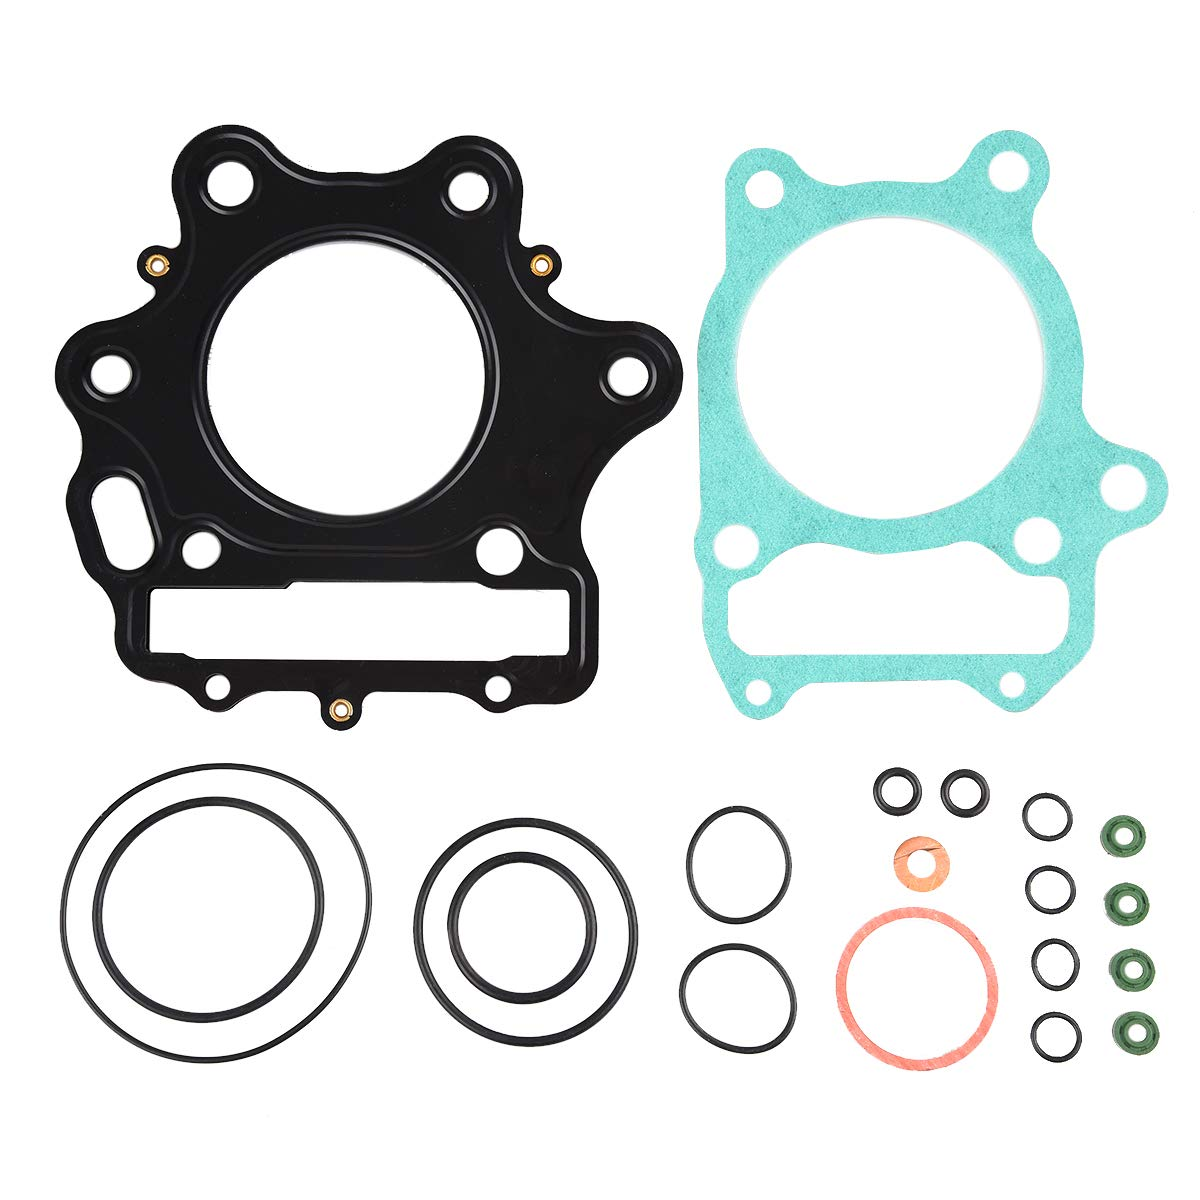 PRO CAKEN Top End Head Gasket Kit for TRX 300EX 300X 1993 2009 TRX250X Fourtrax